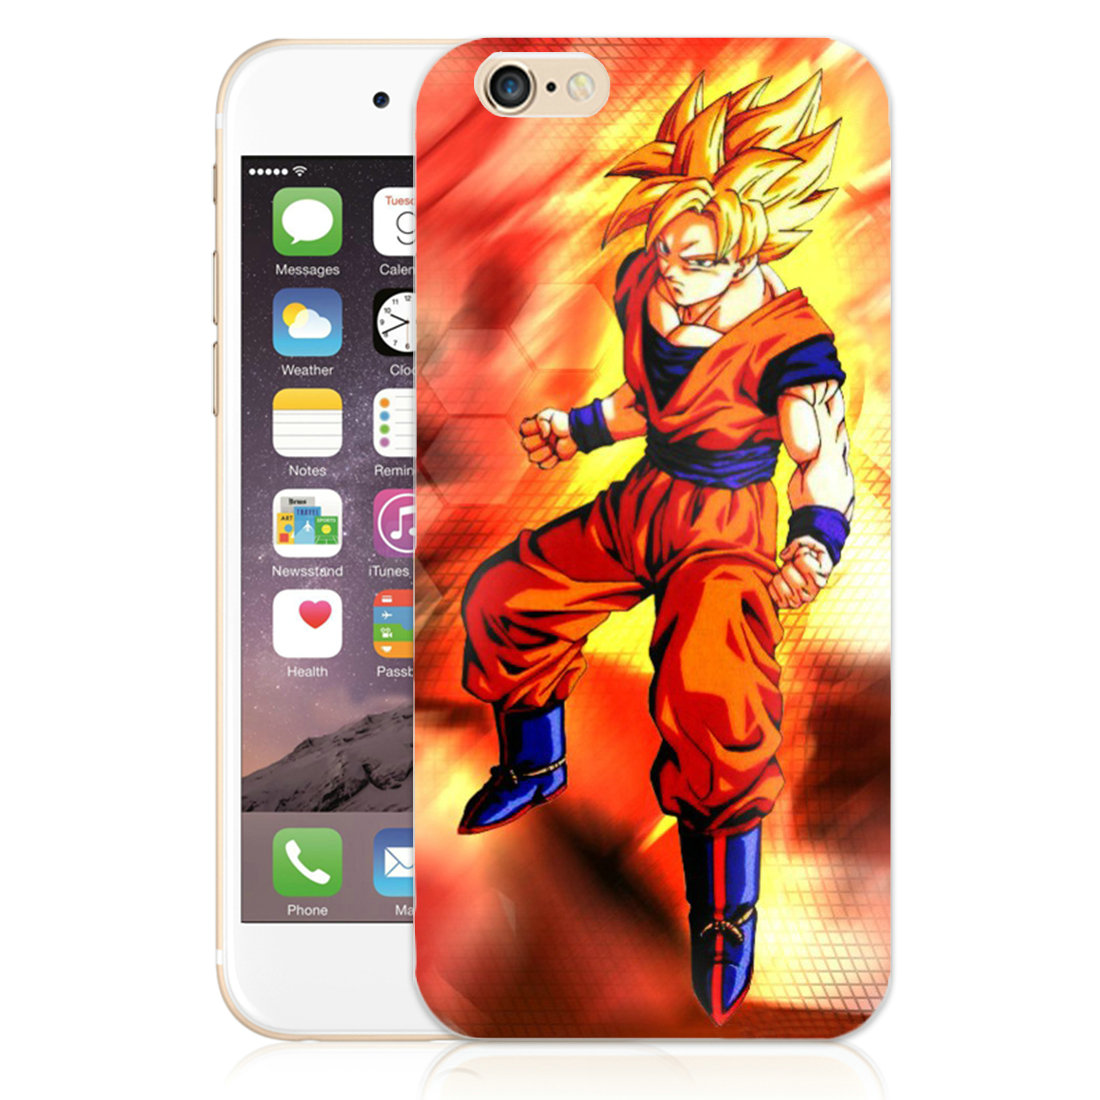 custodia iphone 7 dragon ball